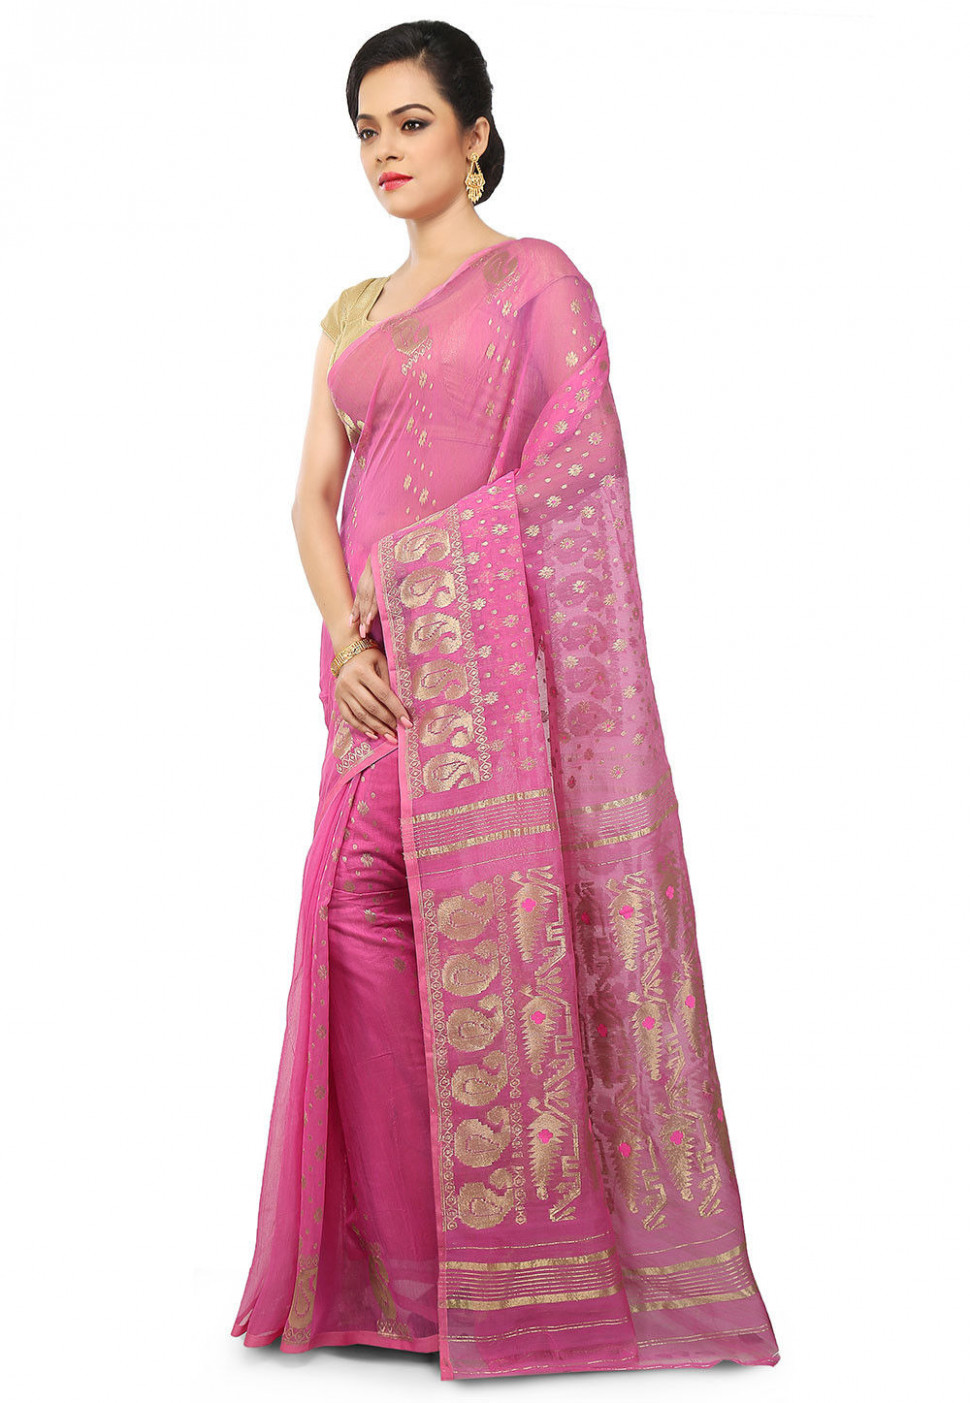 Dhakai Jamdani Cotton Silk Saree in Pink : SHXA172